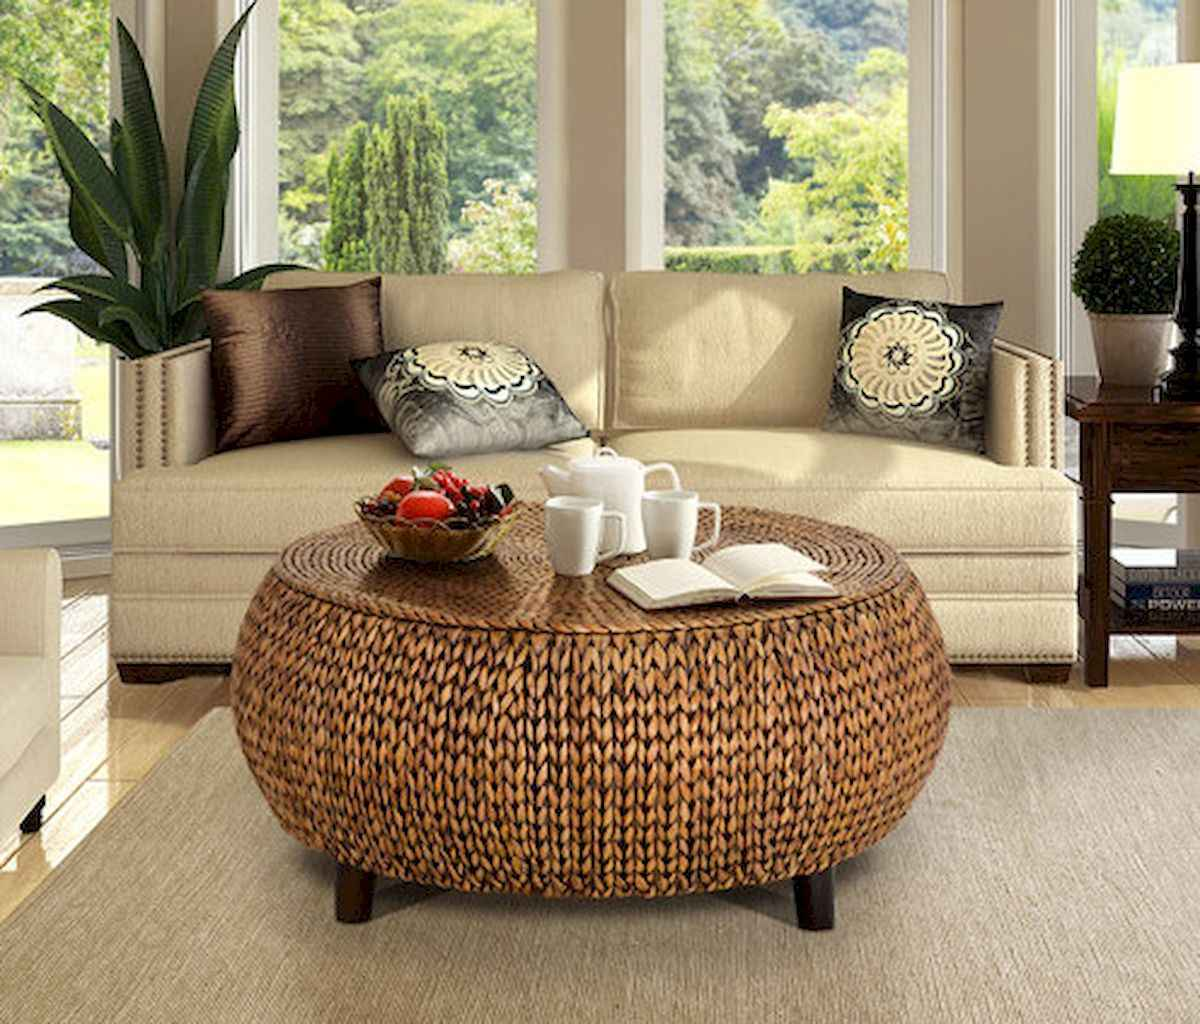 - 45 Inspiring DIY Rustic Coffee Table Design Ideas And Remodel (43